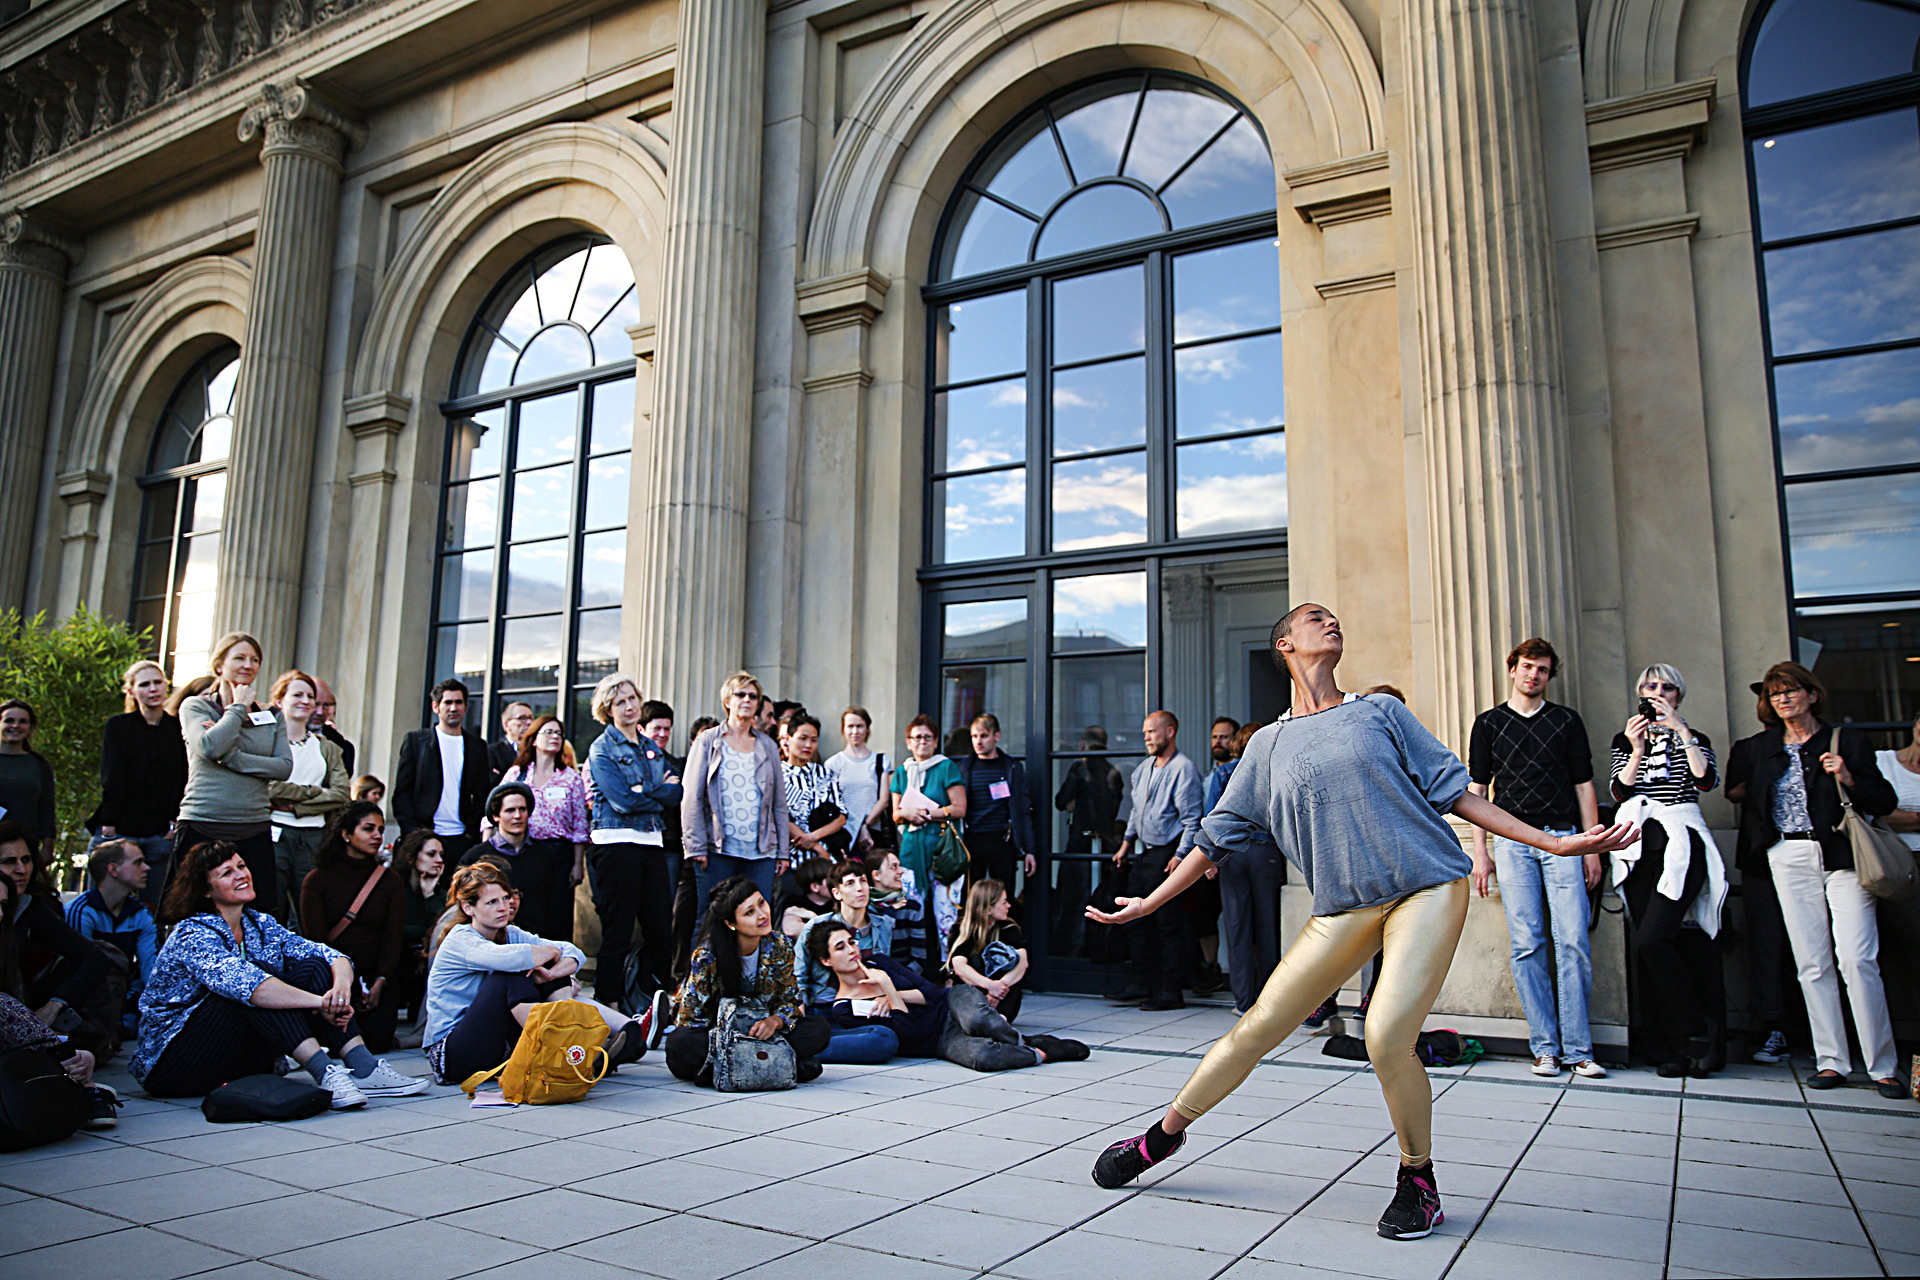 Staatsoper Hannover BORIS CHARMATZ MUSÉE DE LA DANSE: COMMON CHOREOGRAPHIES 20 DANCERS FOR THE XX CENTURY